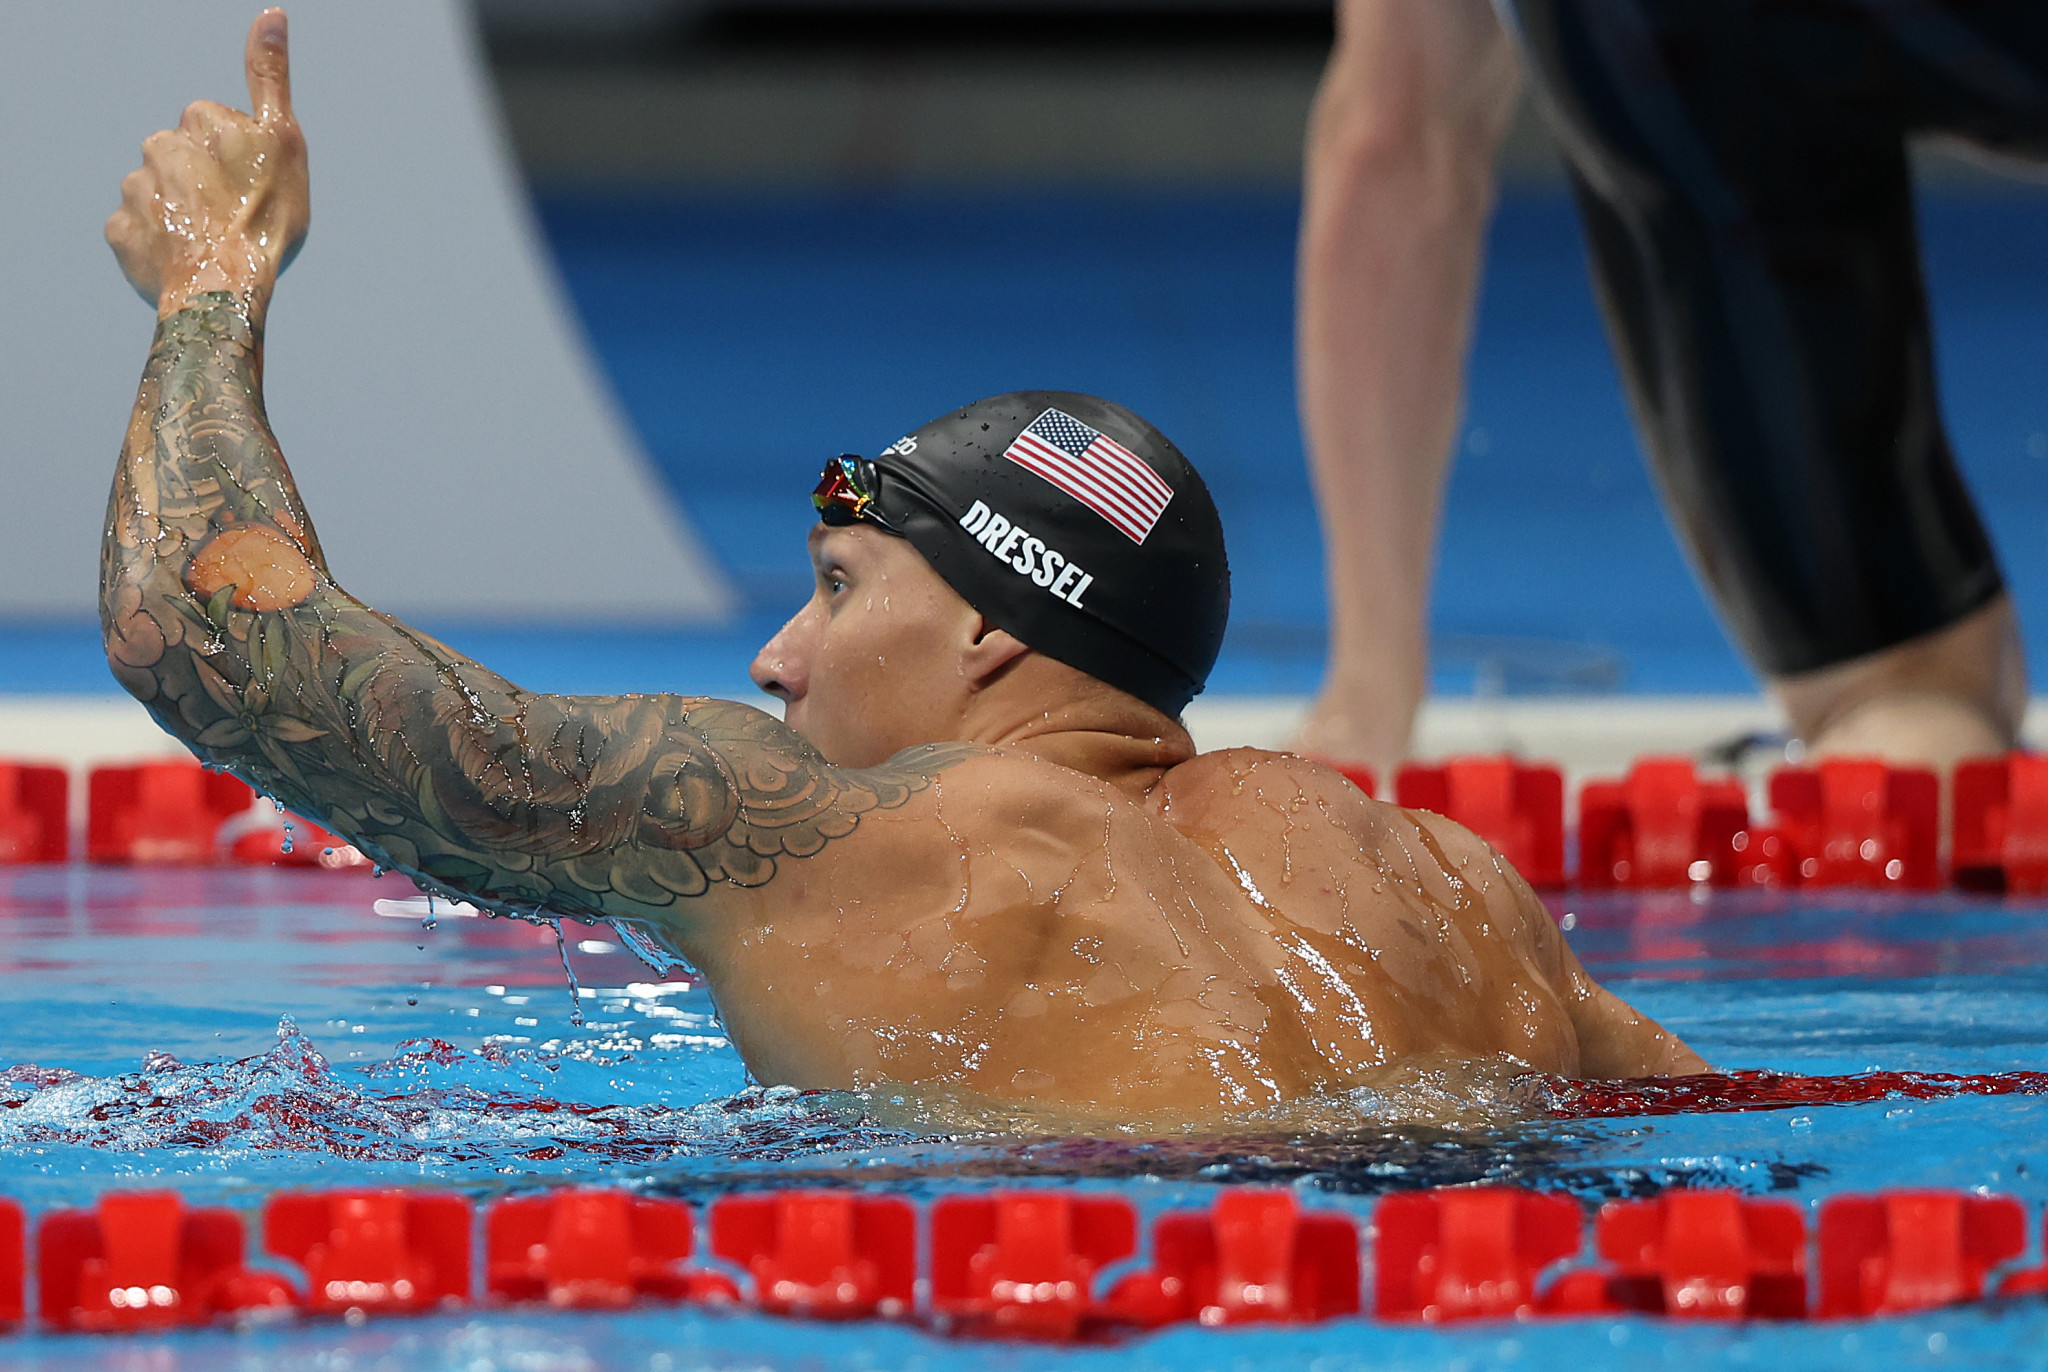 Caeleb Dressel claimed gold in the men's 100m butterfly event ©Getty Images